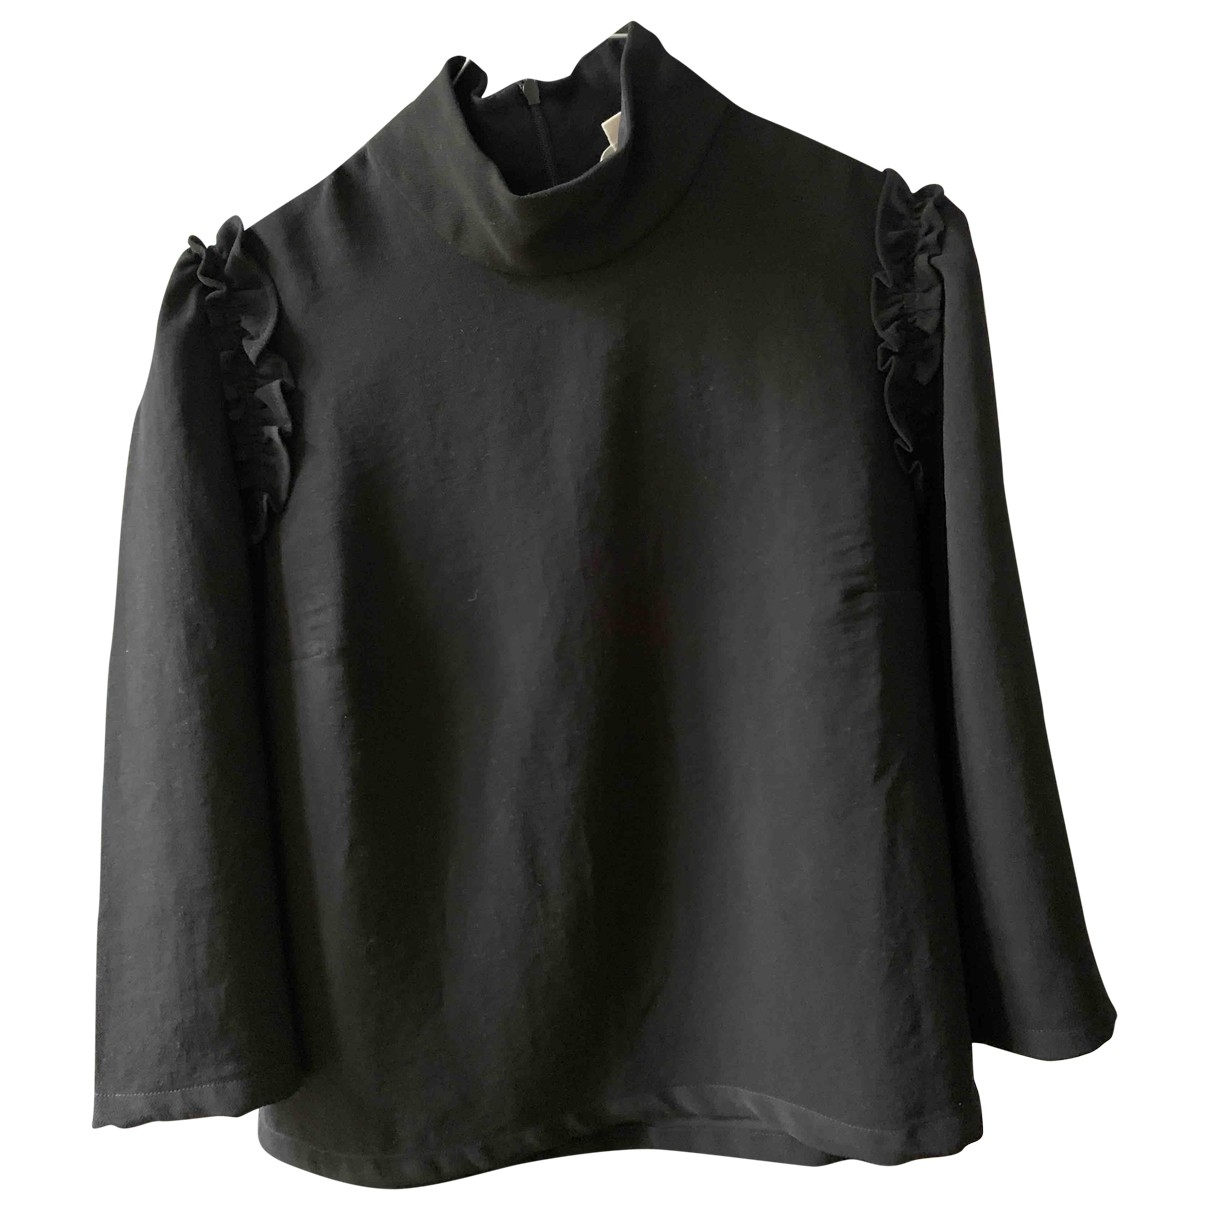 Sézane Fall Winter 2019 Black  top for Women 38 FR